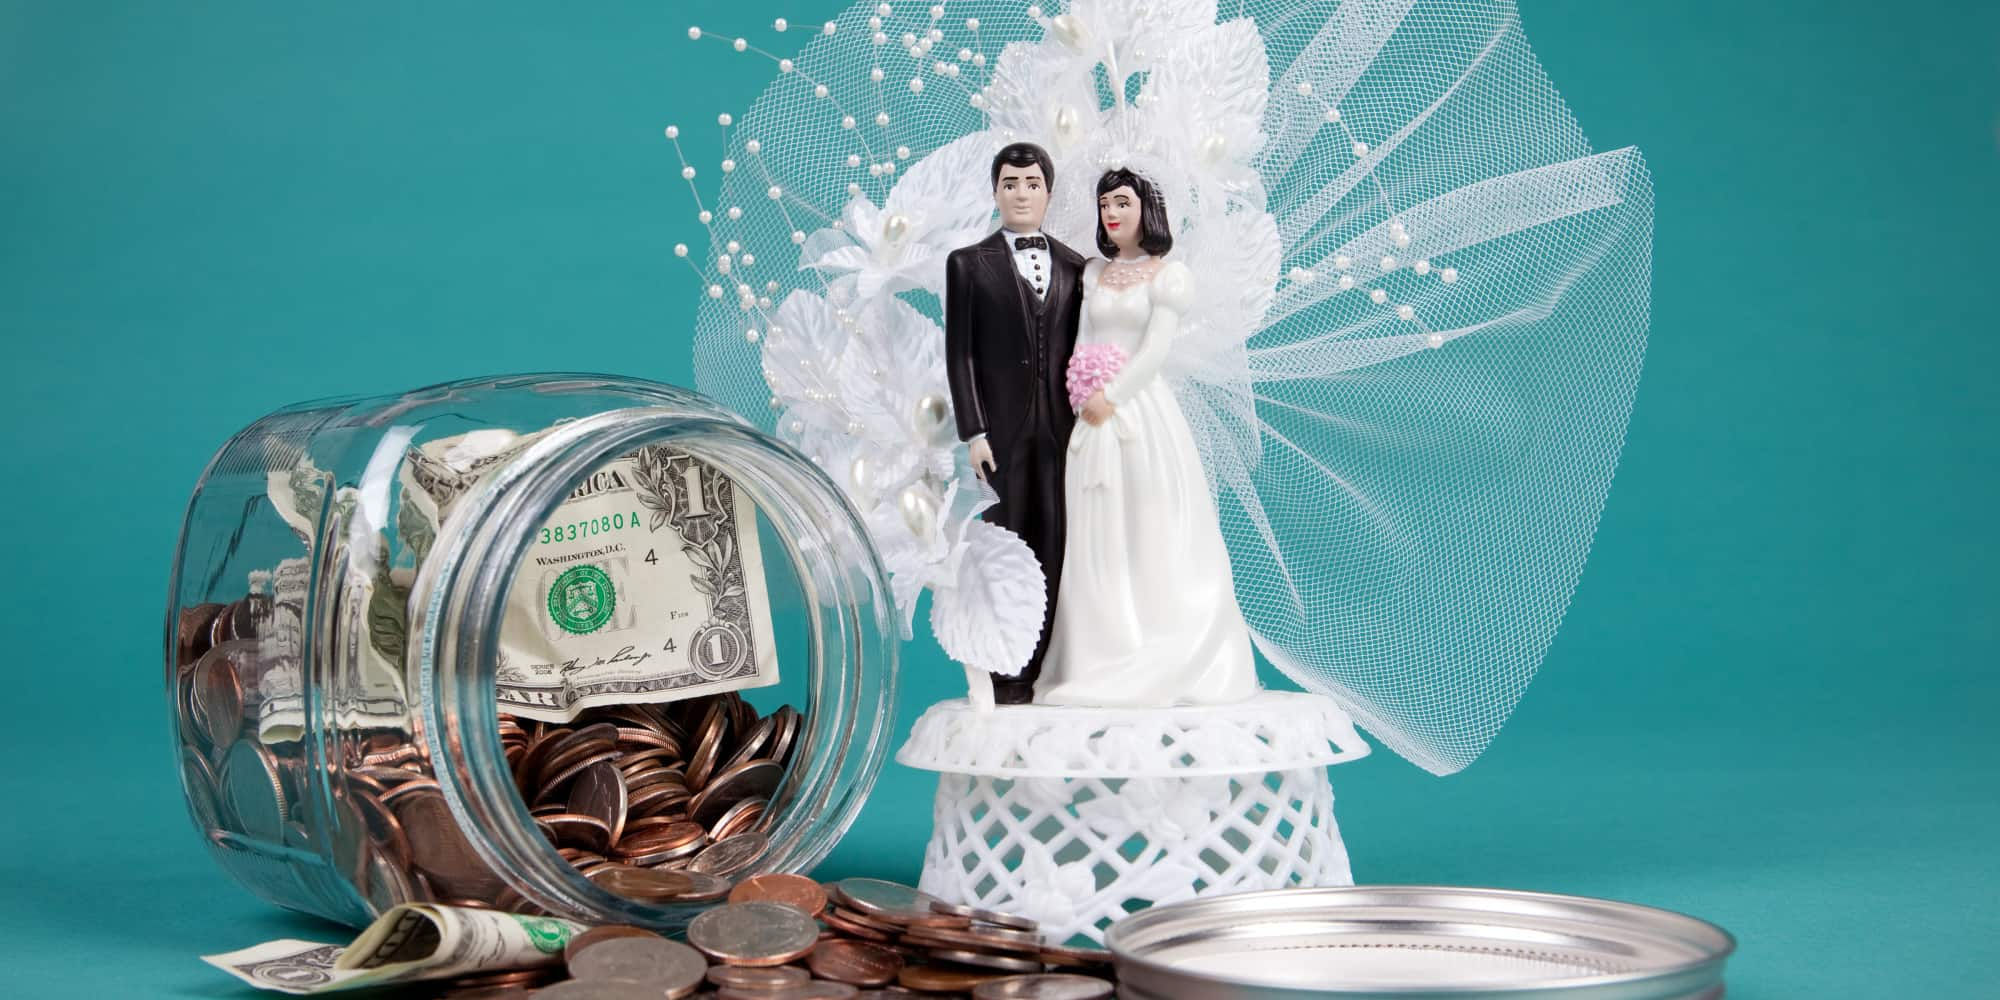 Wedding budget who pays for a wedding wedding savings wedding budget who pays for a wedding who pays for what junglespirit Choice Image